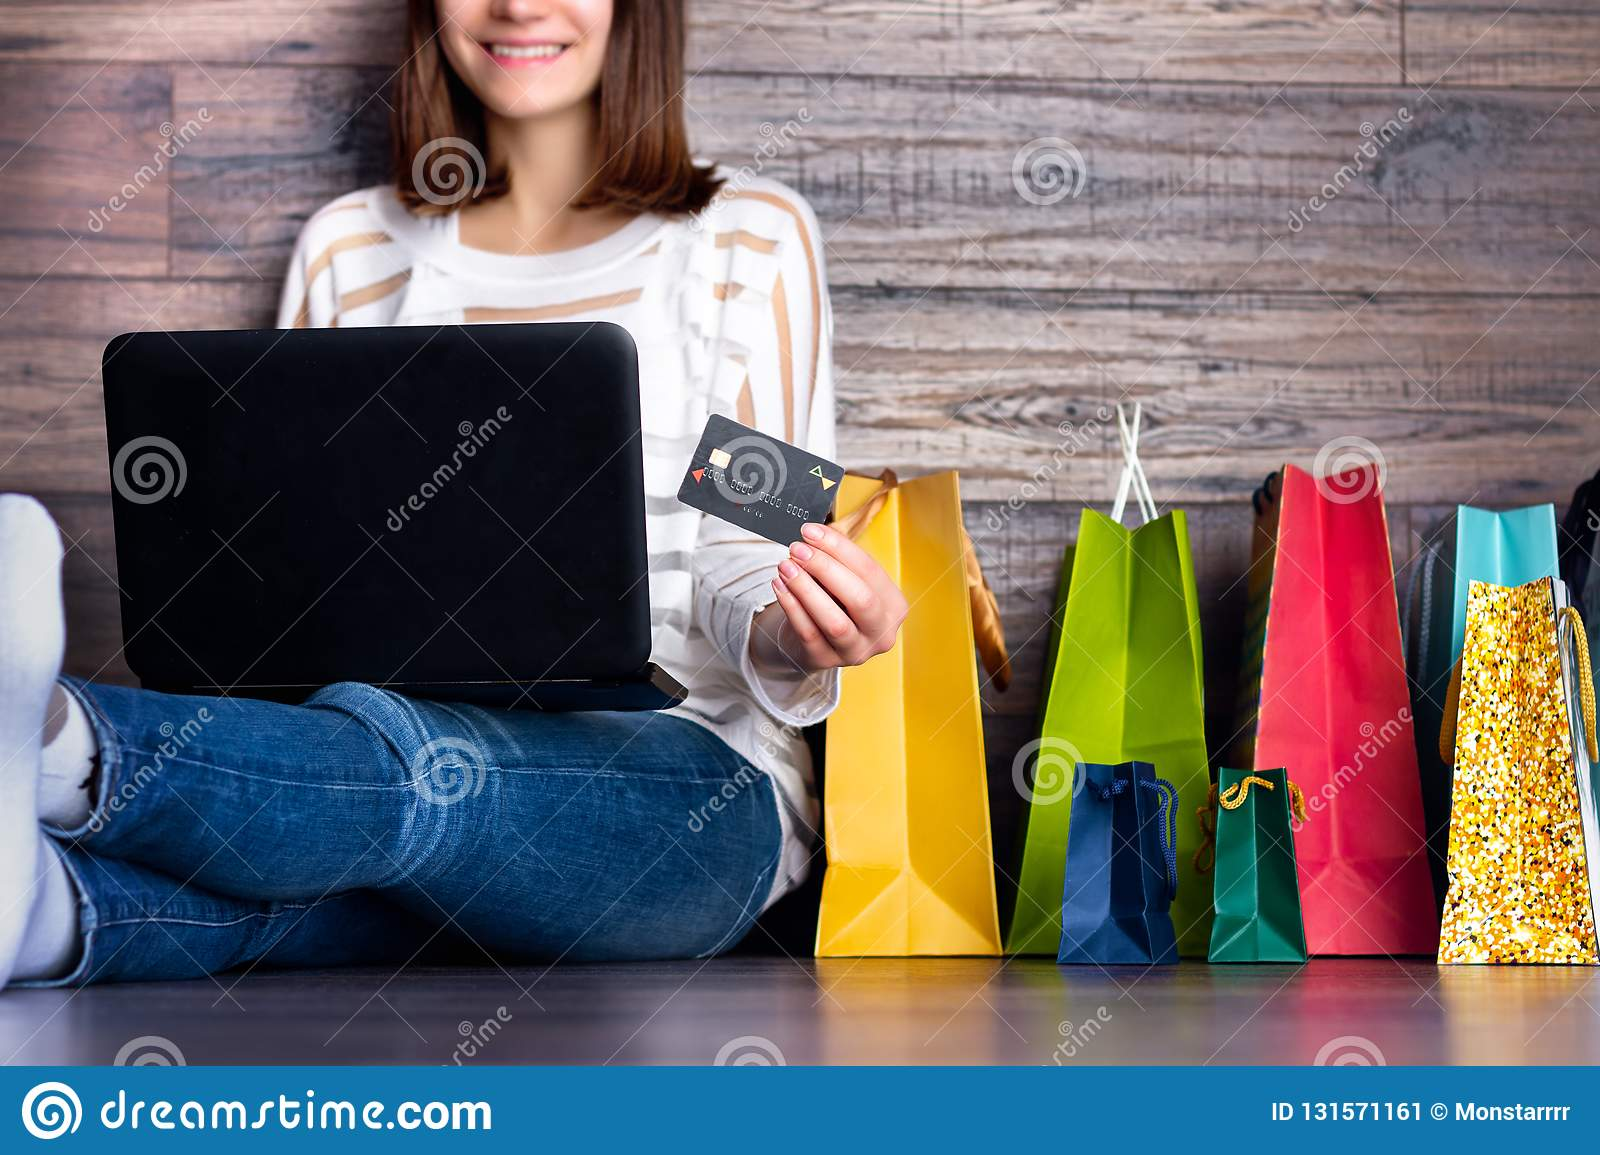 Woman female adult smiling buying making payment on fashion cloth internet online store shop by credit debit card with laptop